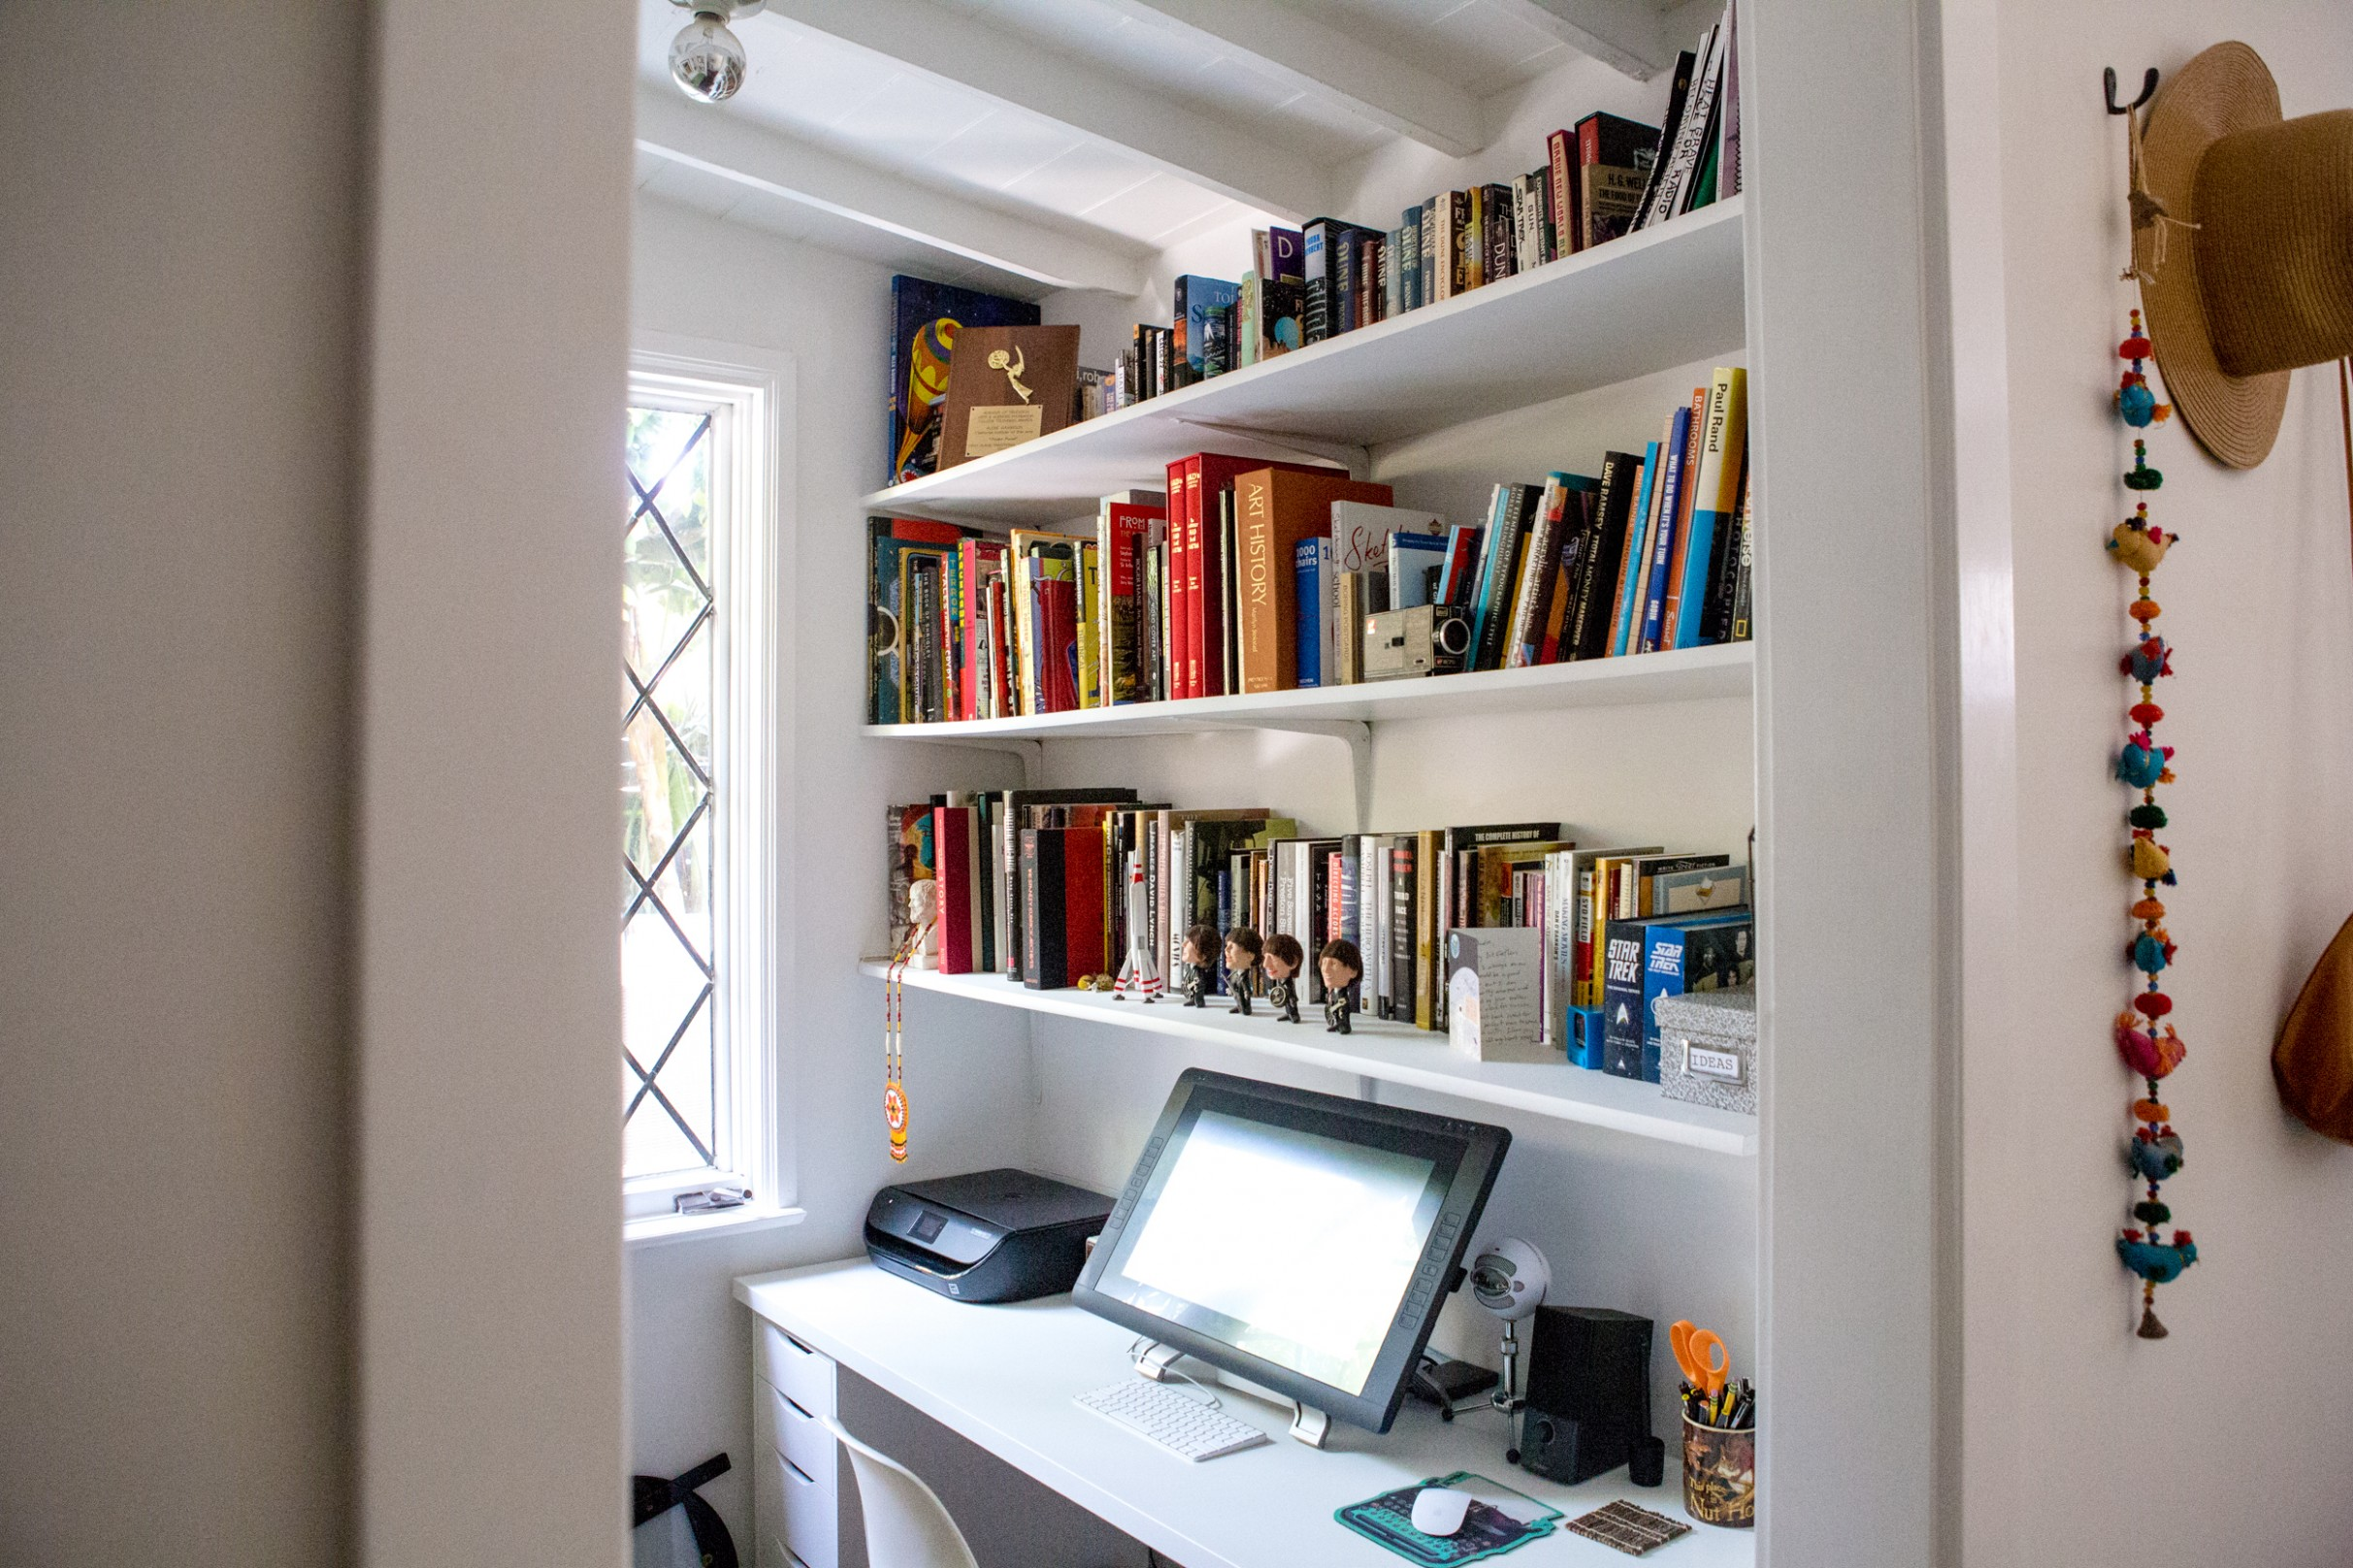 Small Home Office Ideas - How to Make a Home Office in a Tiny  - Home Office Ideas Small Room